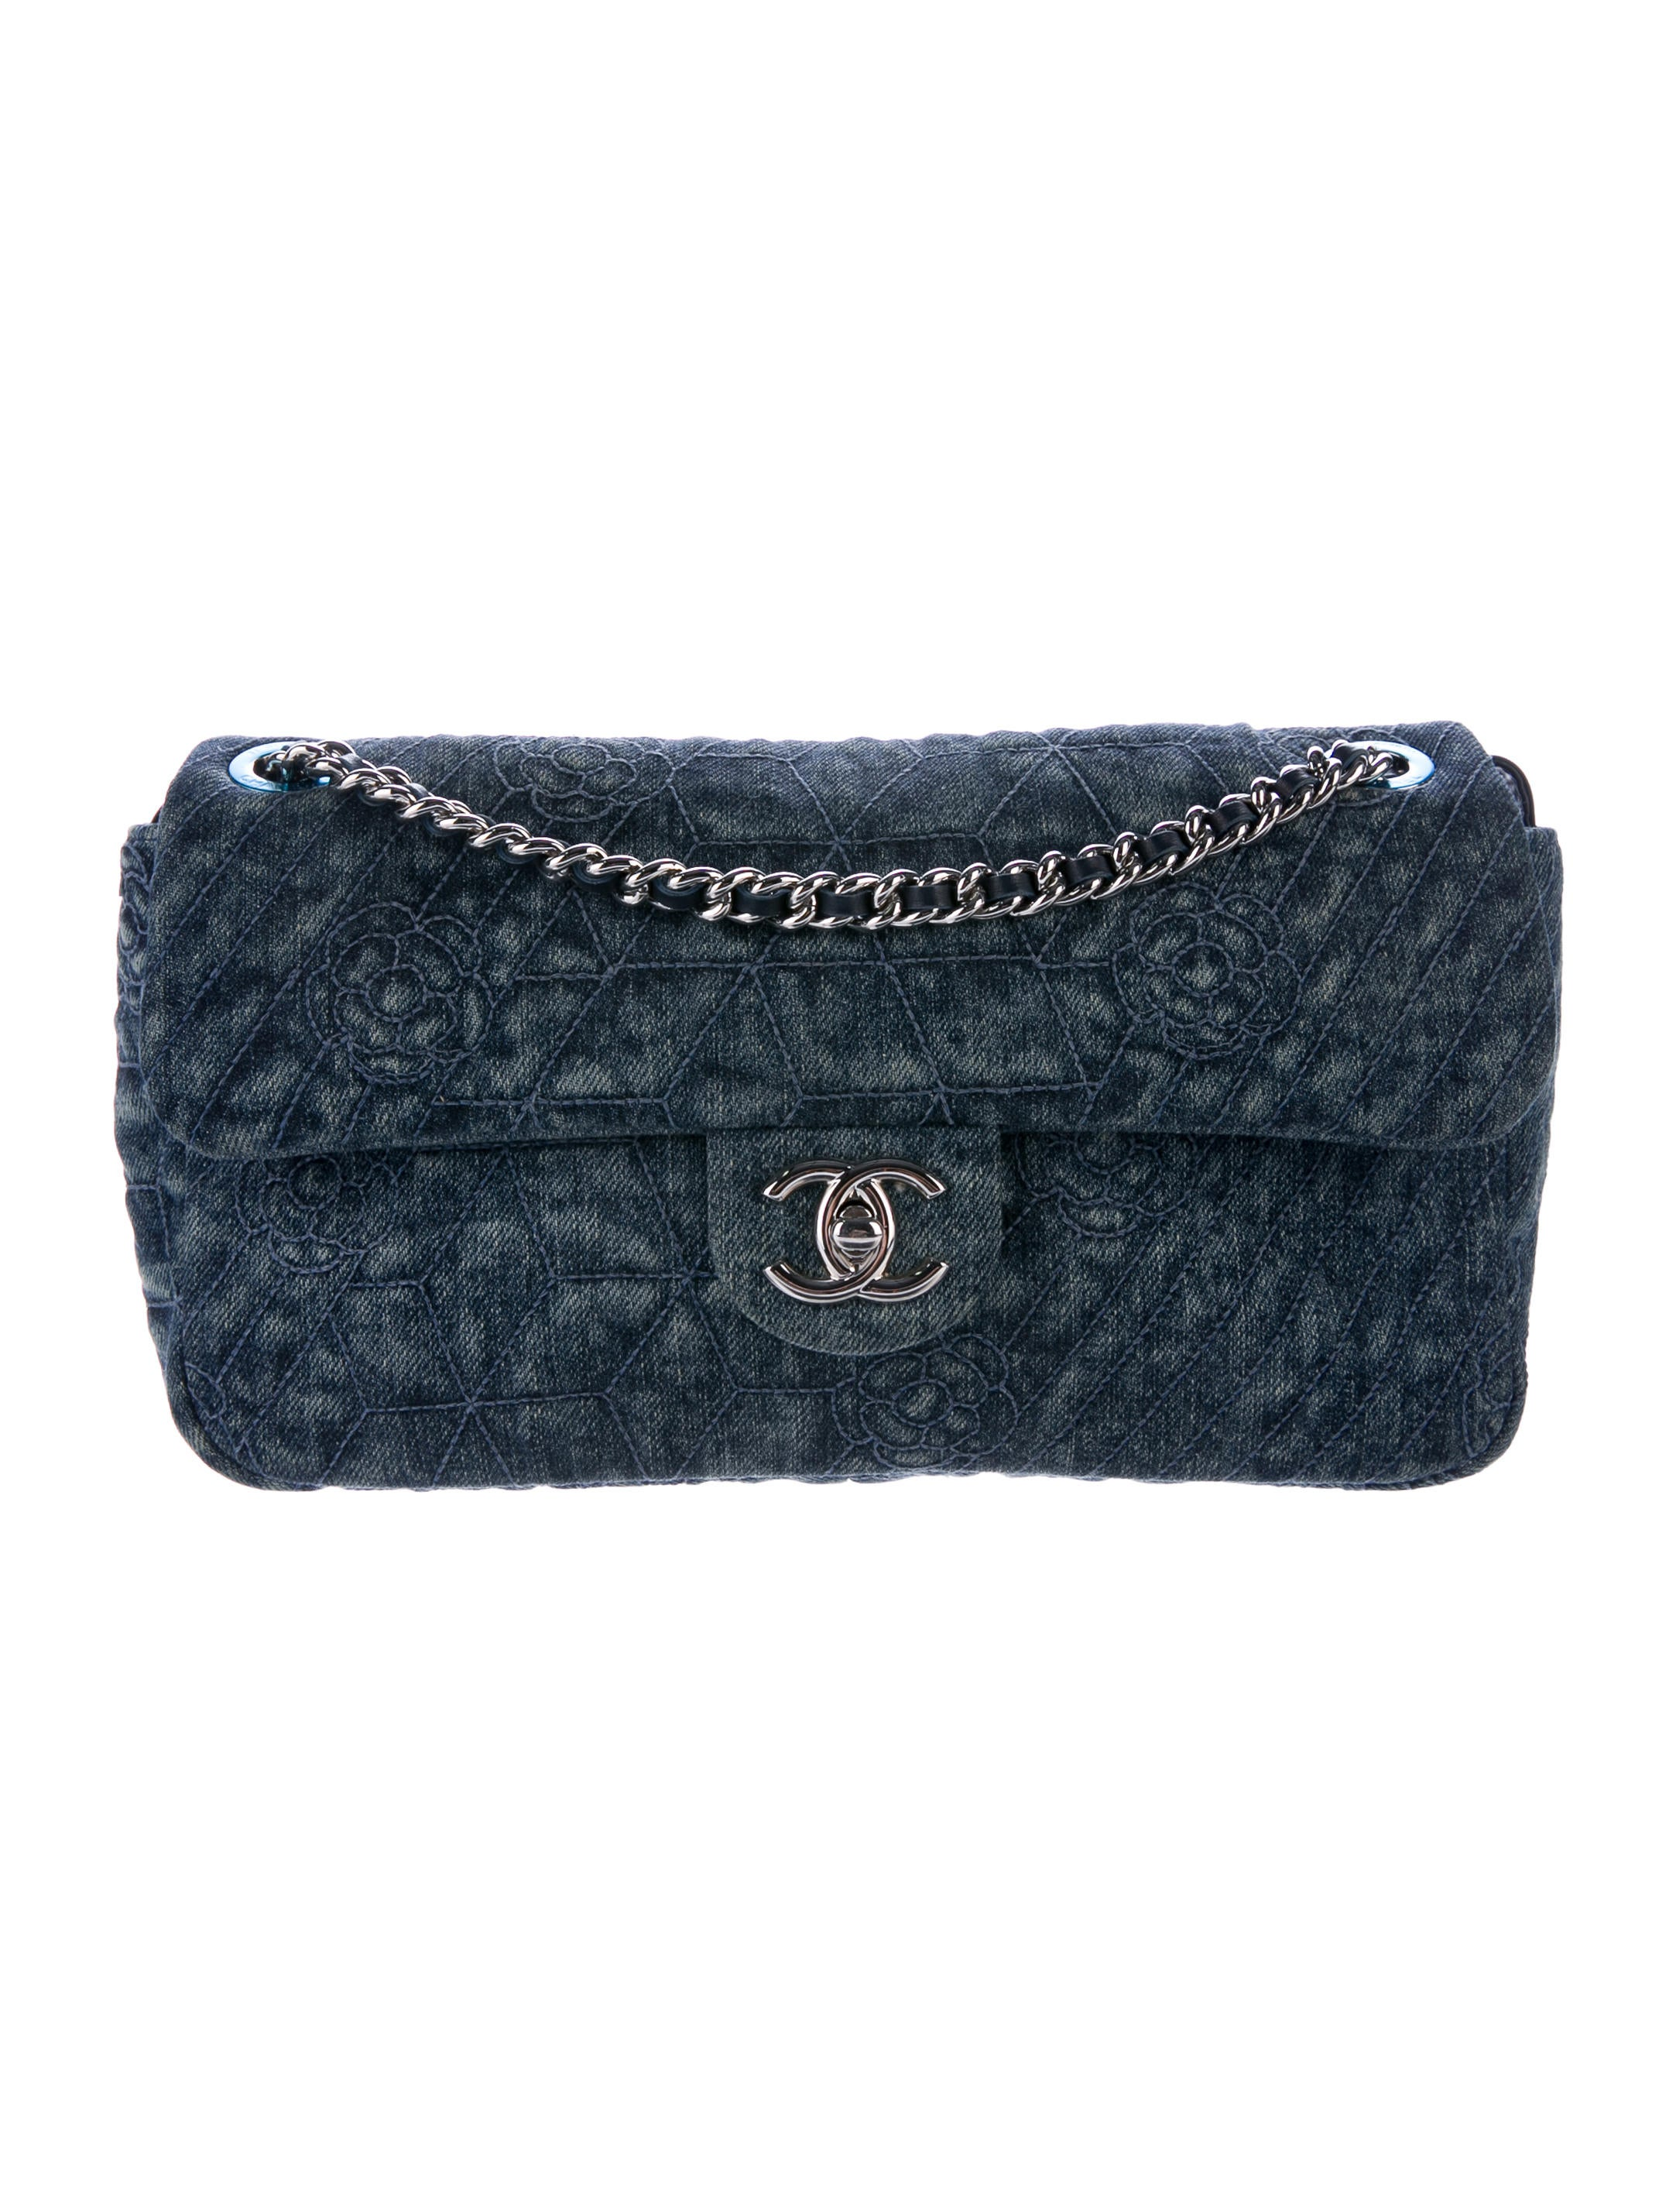 chanel denim camellia flap bag handbags cha189810